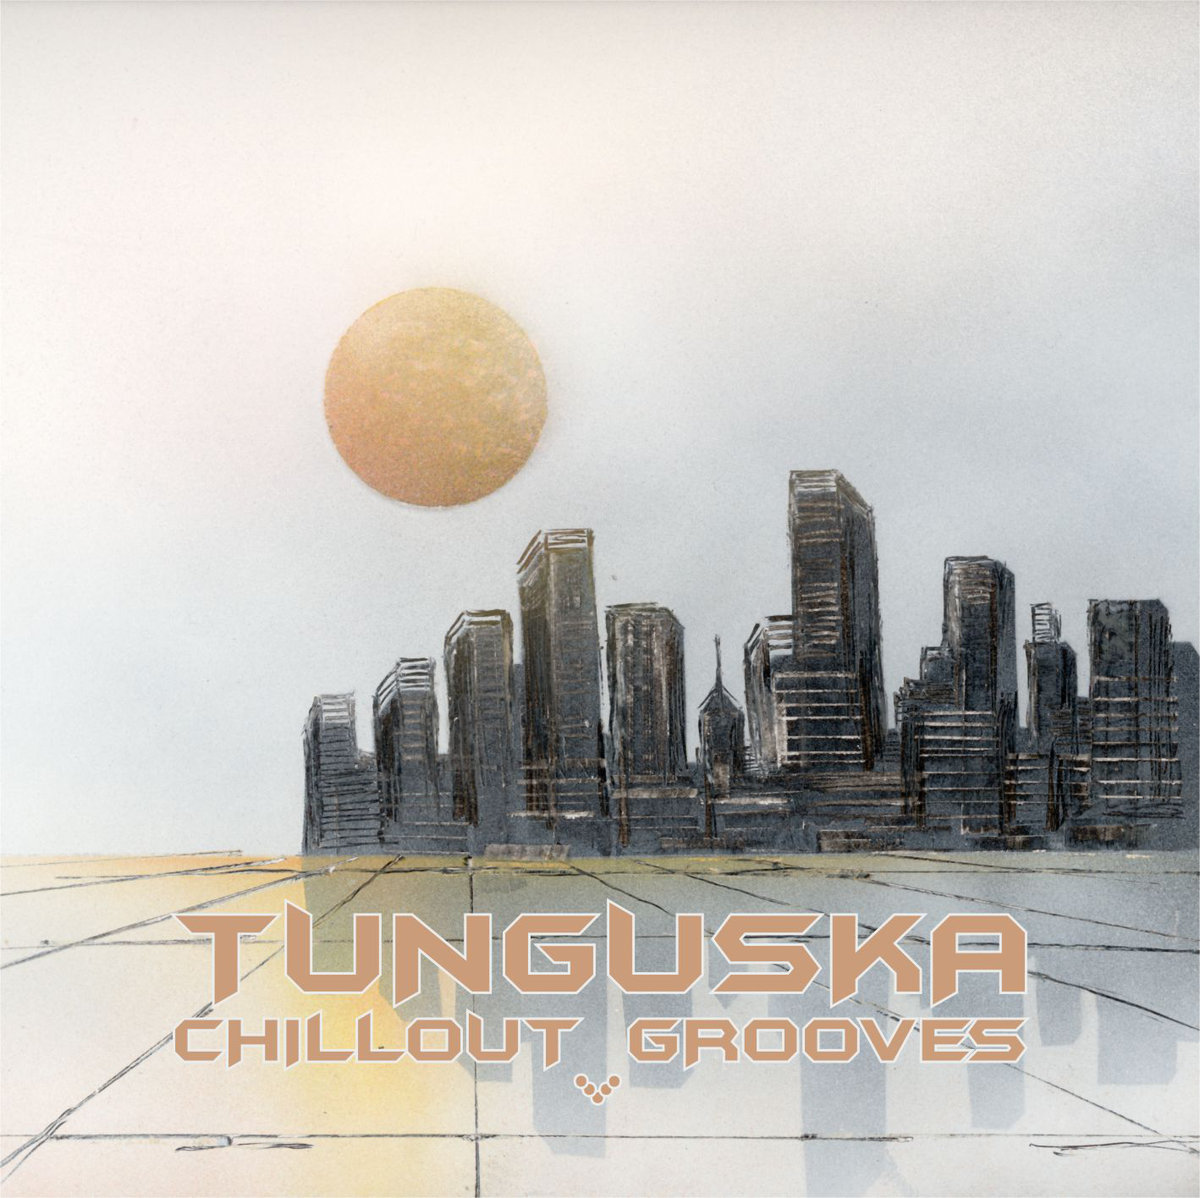 3DStas - My Twin (Edit) @ 'Tunguska Chillout Grooves - Volume 5' album (electronic, ambient)